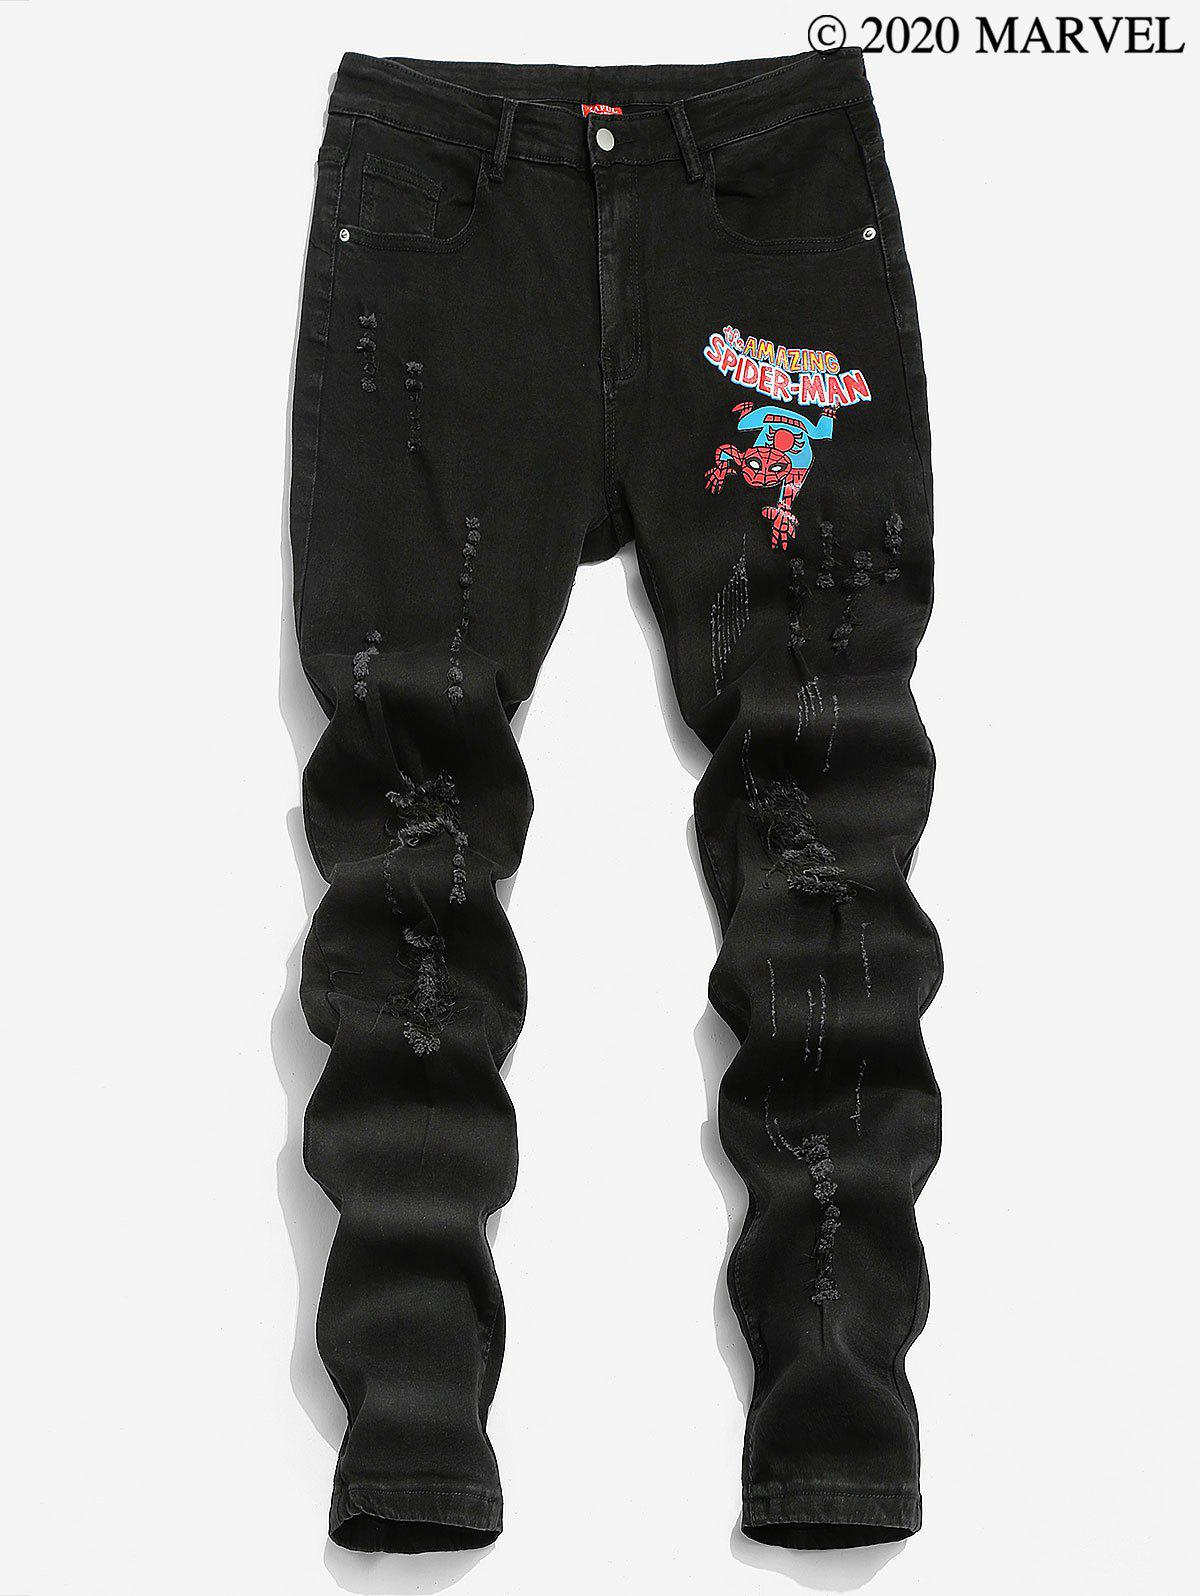 Marvel Spider-Man Graphic Print Ripped Tapered Jeans - BLACK M